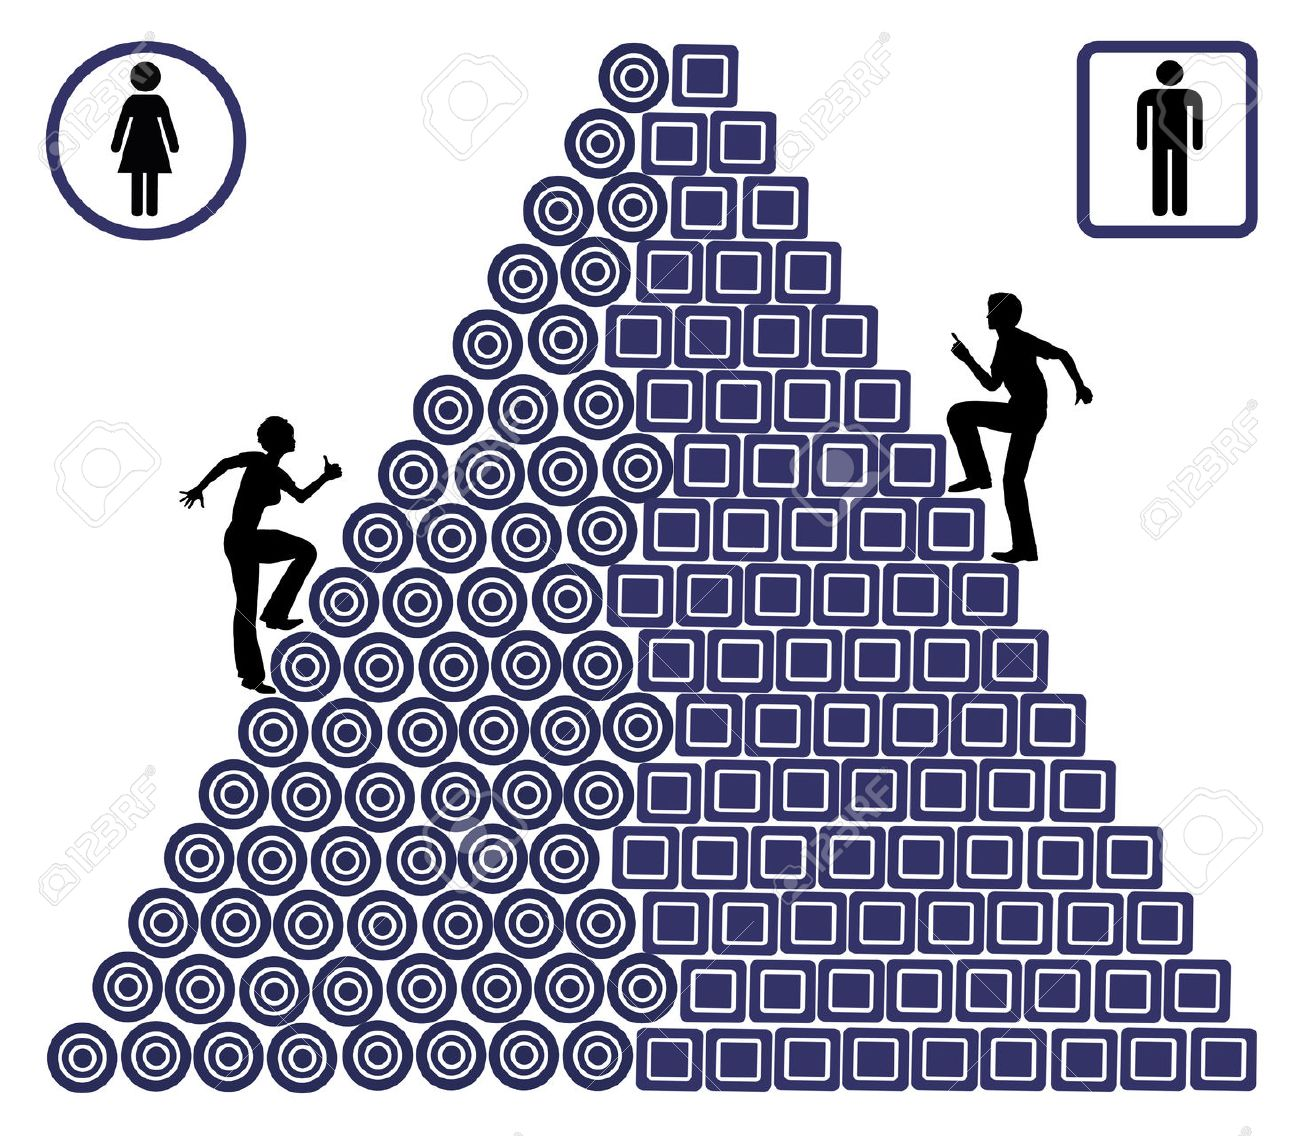 Gender Career Gap. Woman have to struggle far more than men at their workplace suffering unequal chances - 39788236